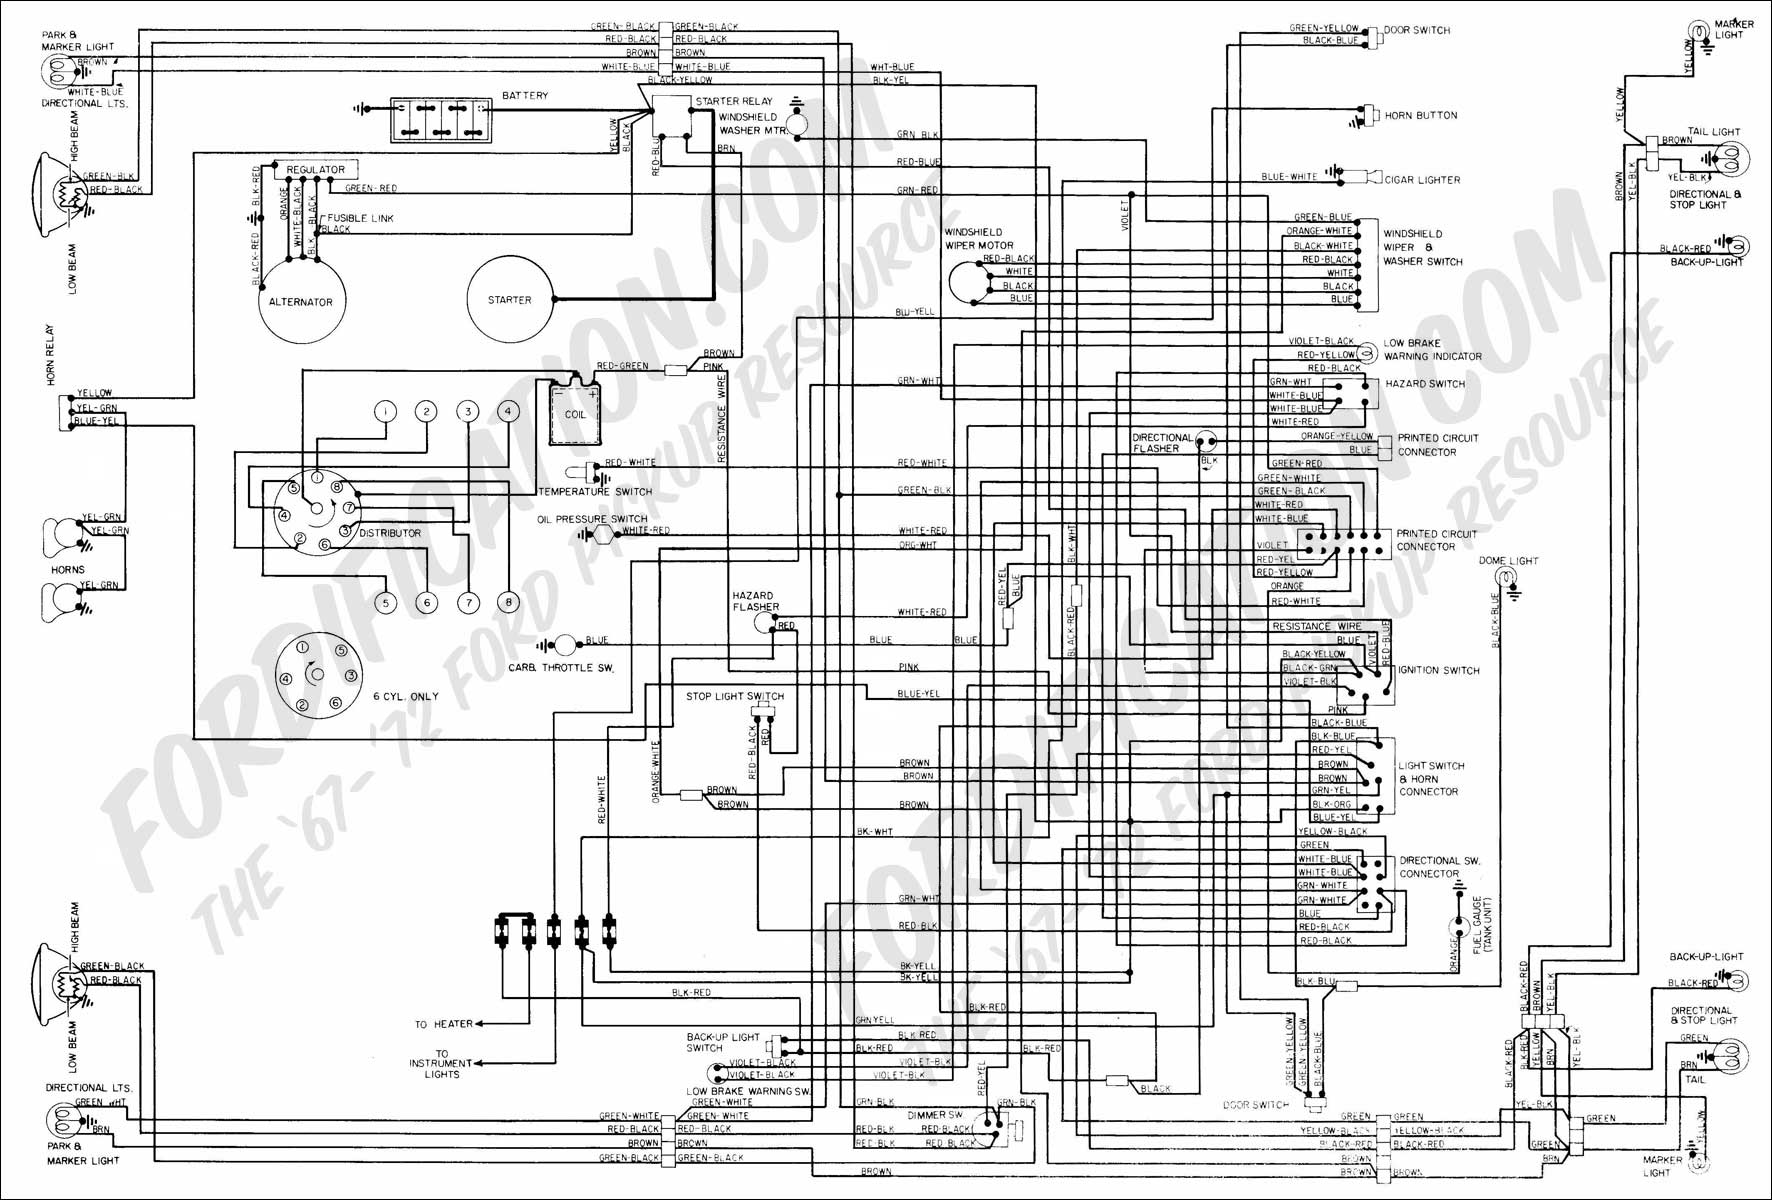 1269884 Ineed A Istrument Cluster Wiring Diagram on 1997 kia sportage radio wiring diagram